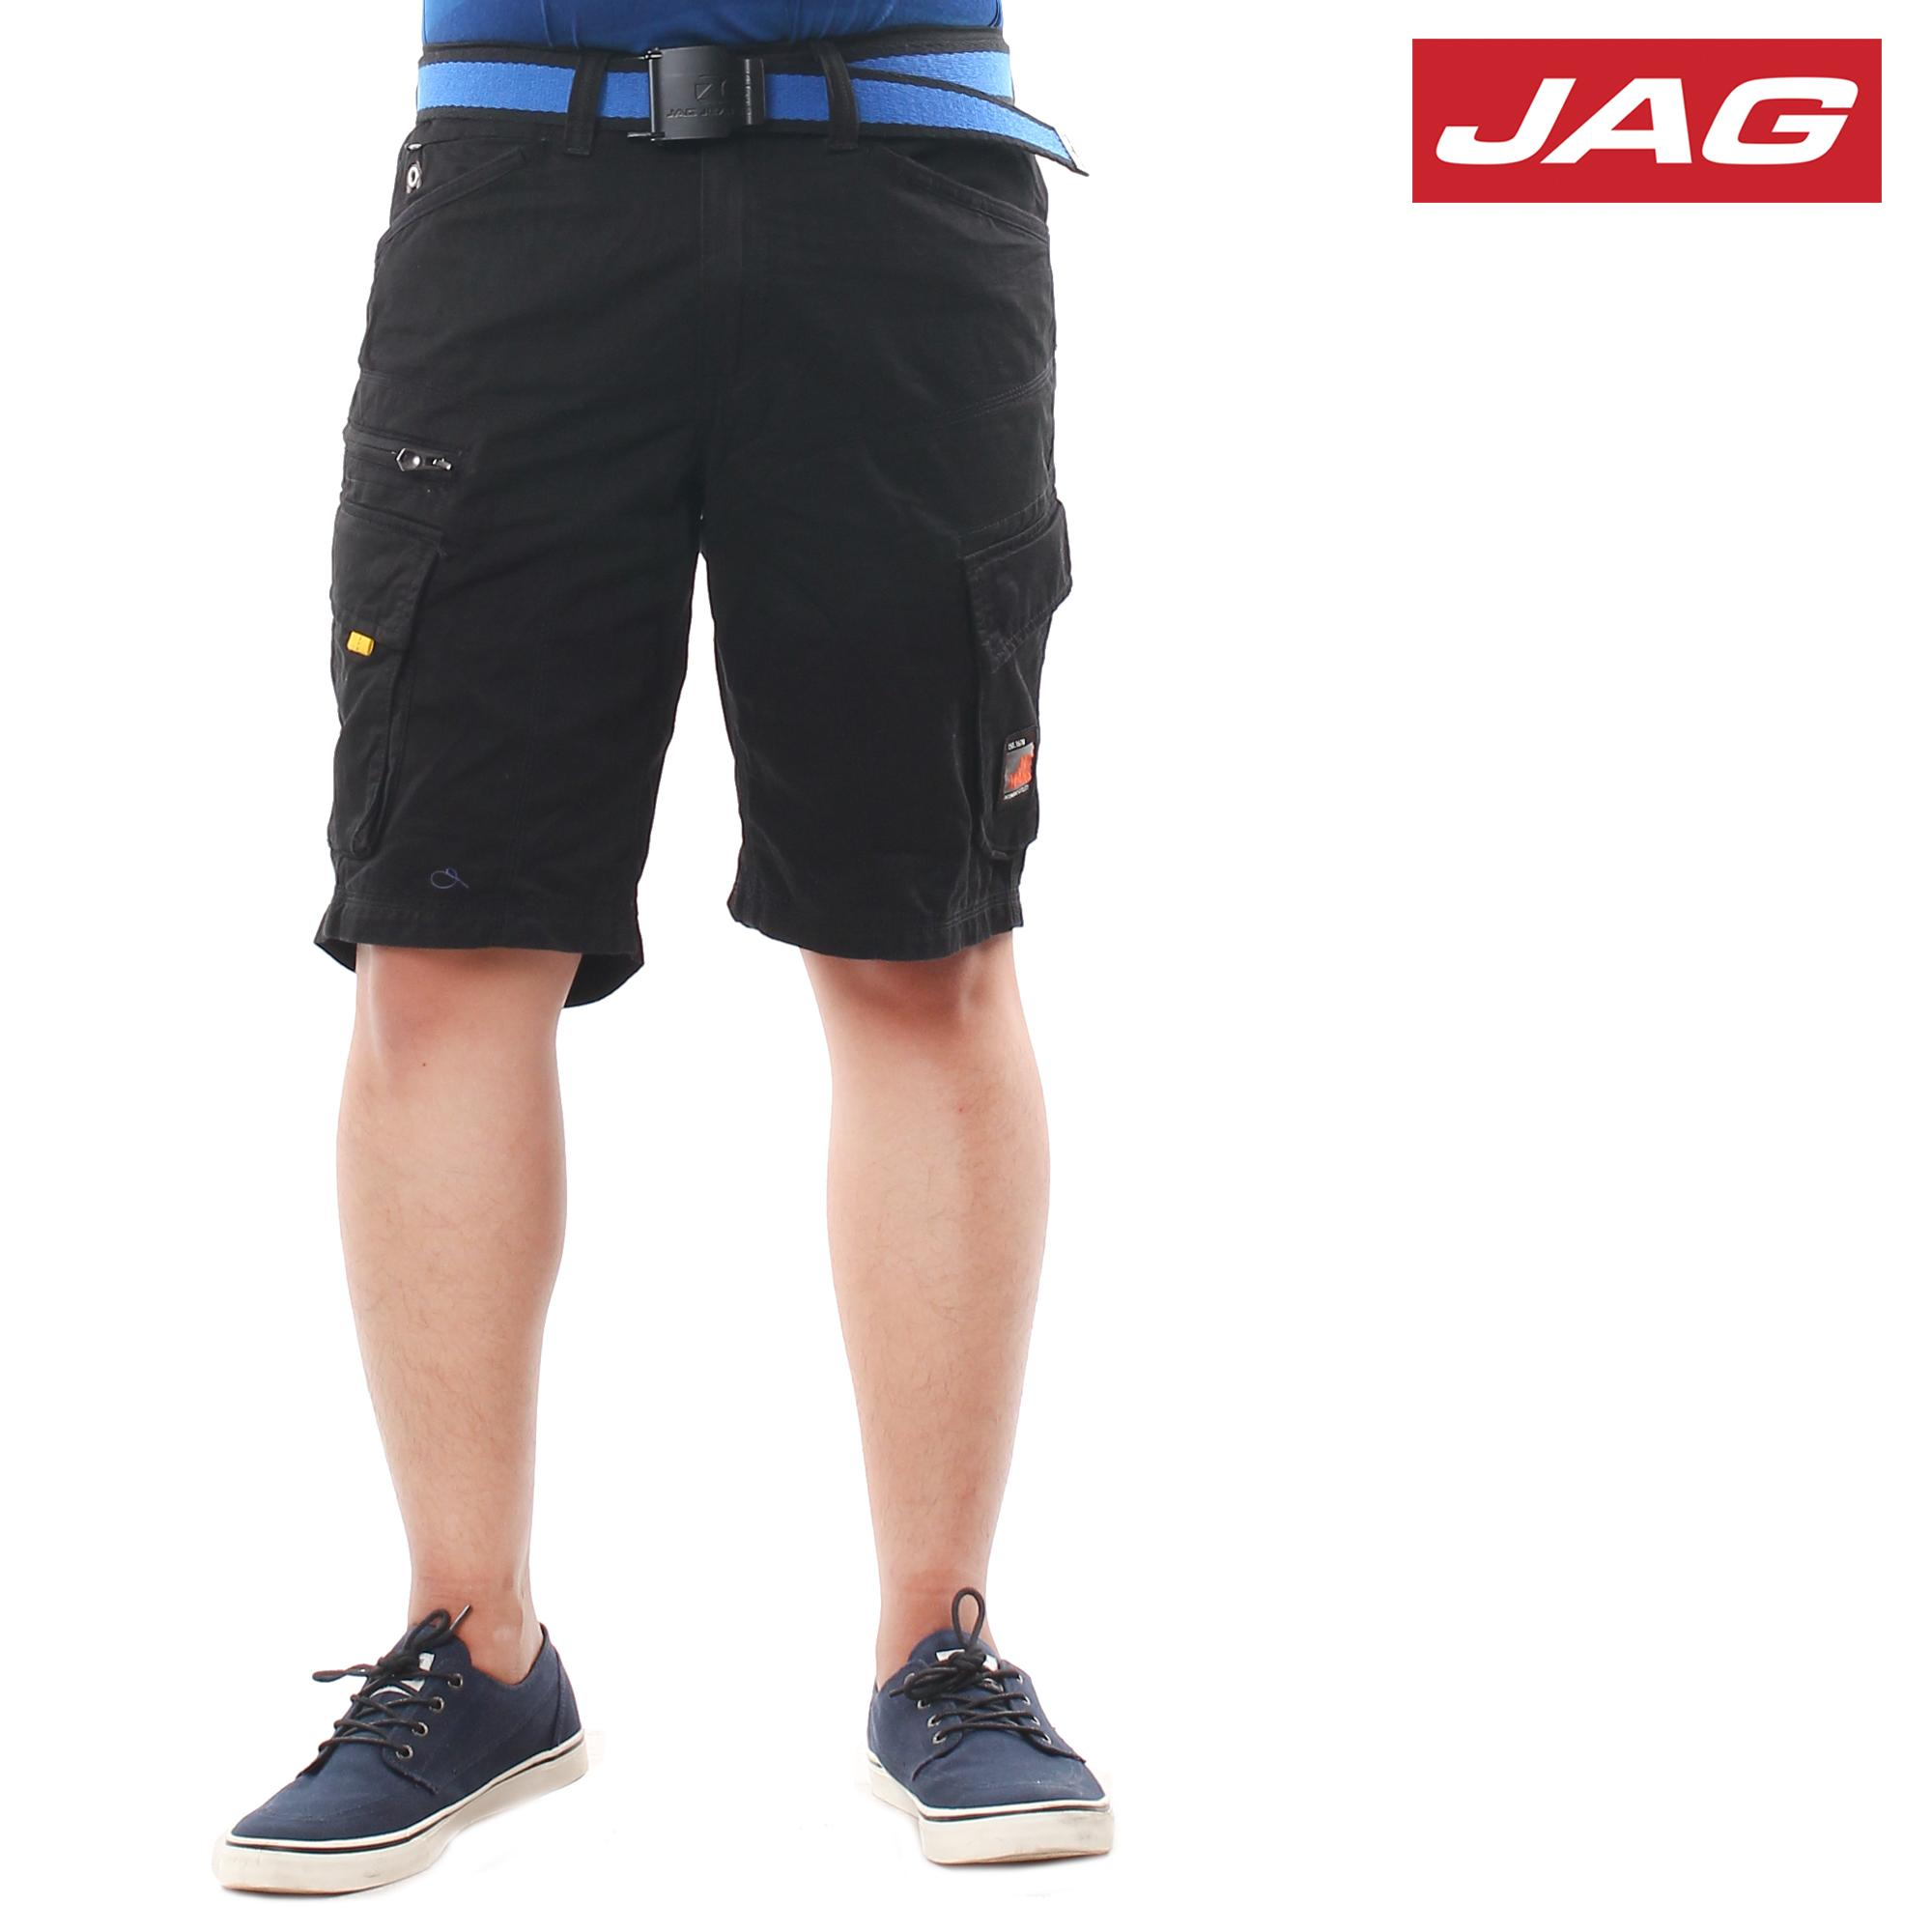 Jag Philippines Jag Price List Jag Fashion Clothing For Men